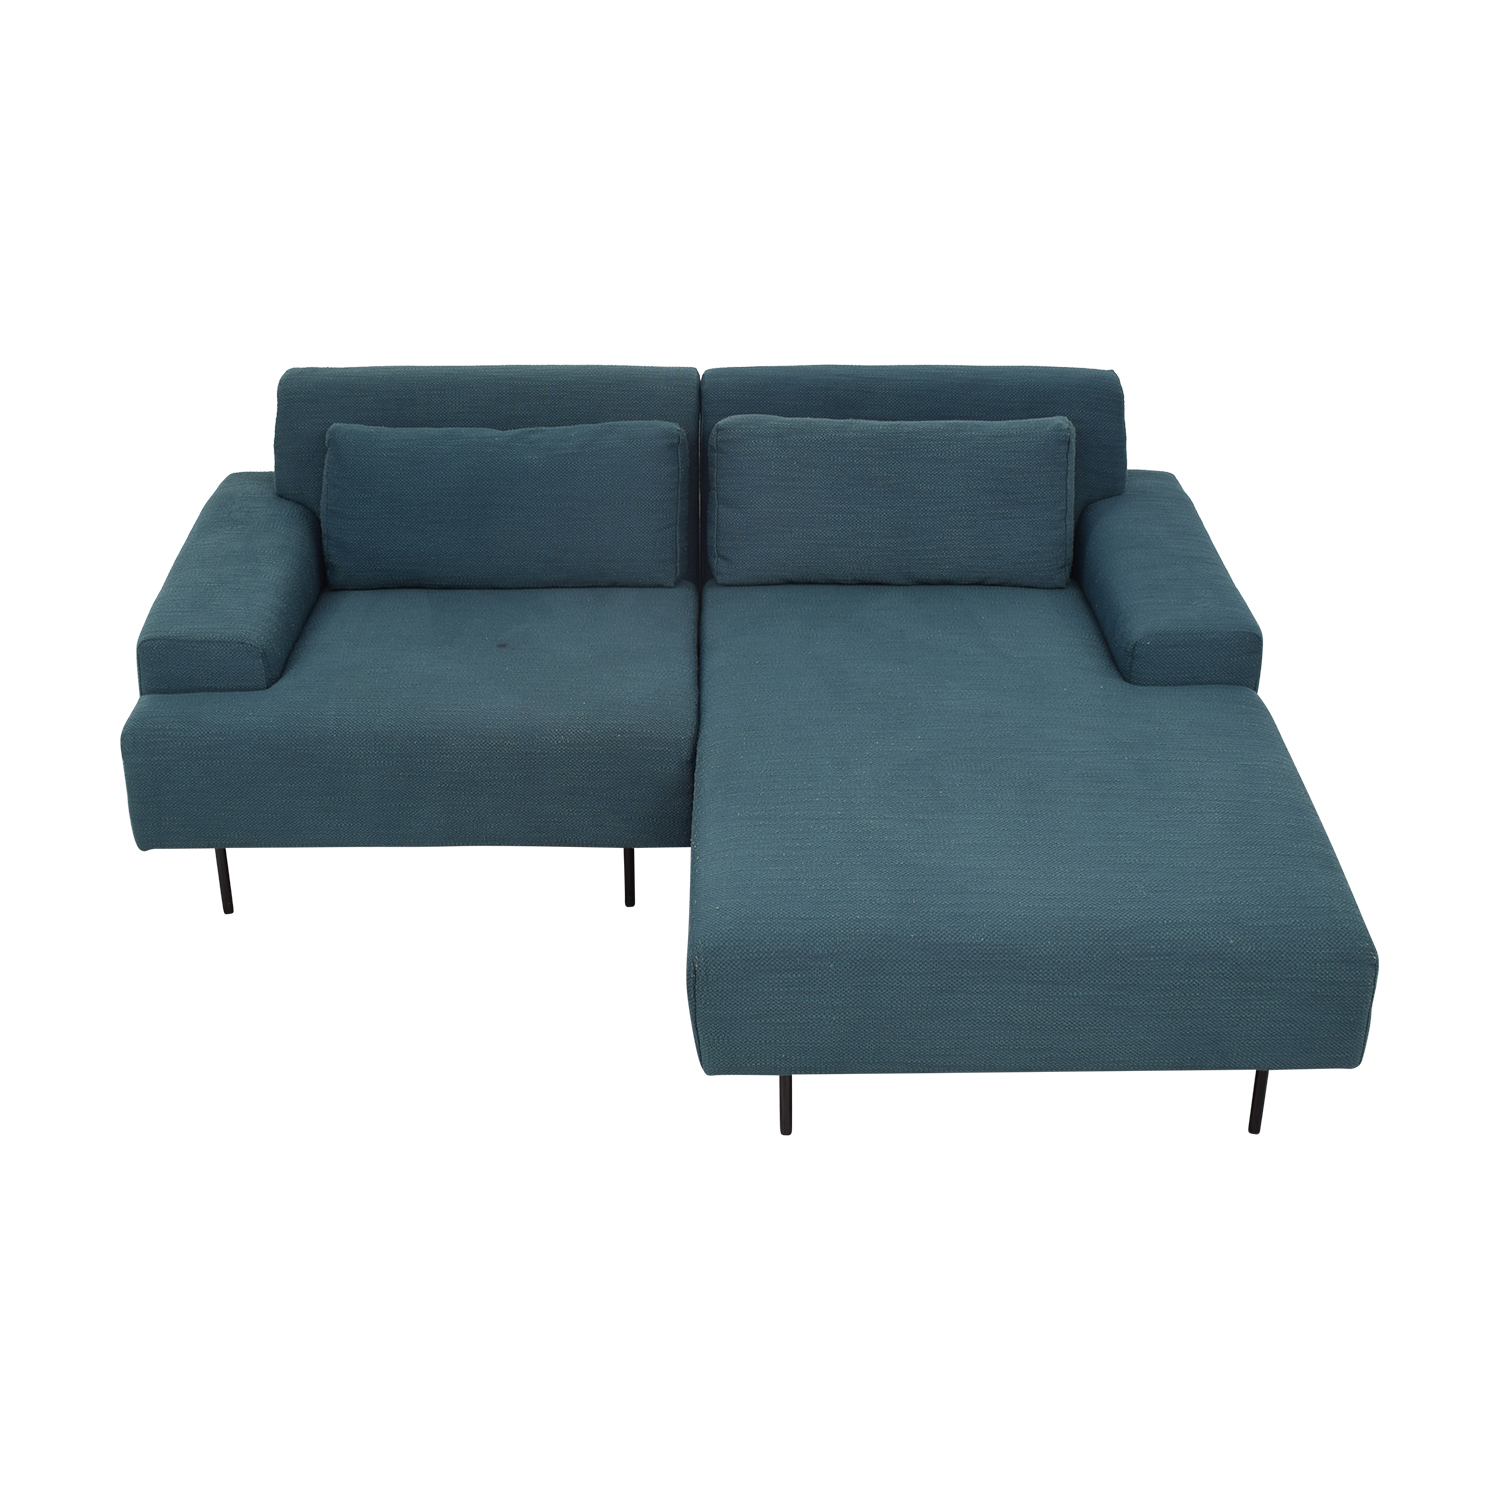 West Elm West Elm Two Piece Chaise Sectional Sofa nyc